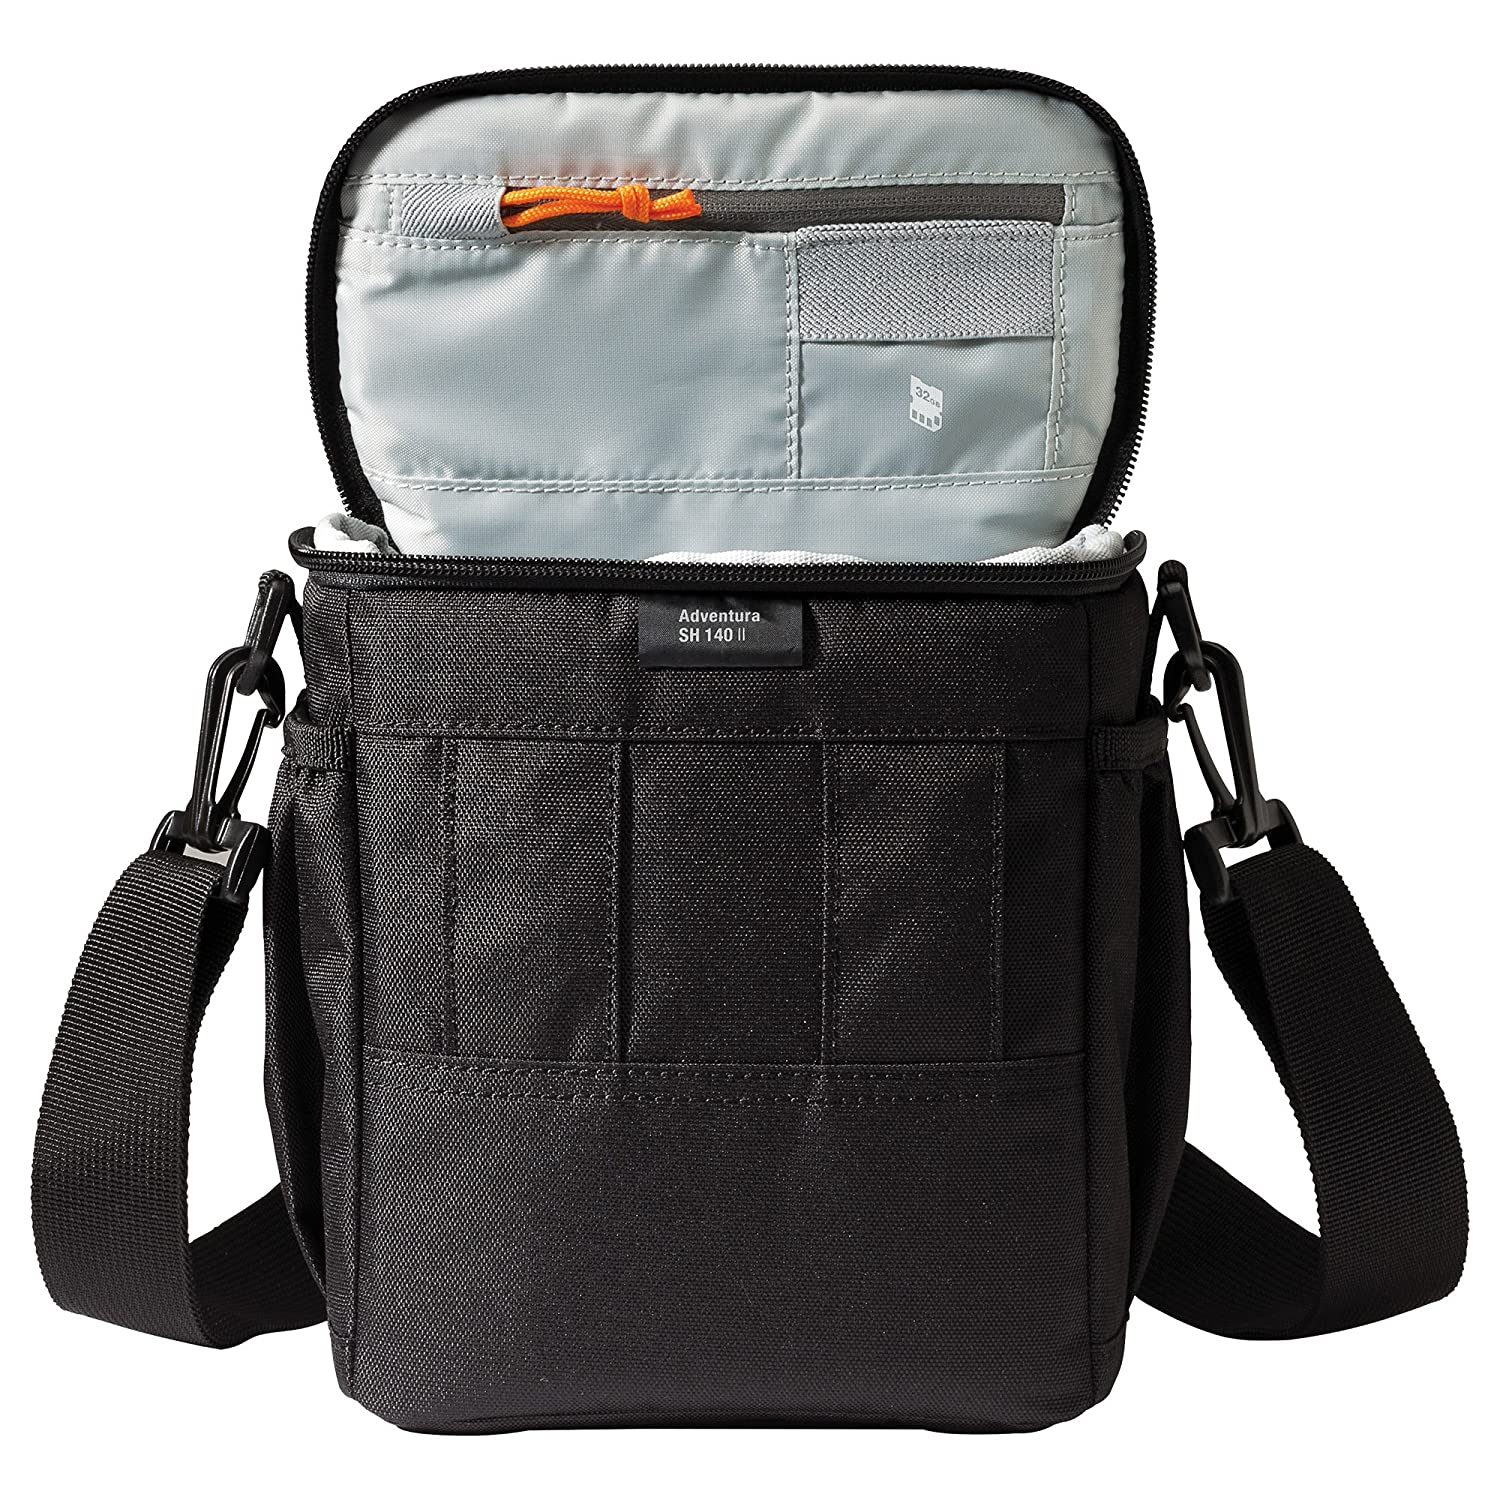 Lowepro Adventura SH 140 II Spark Shoulder Bag